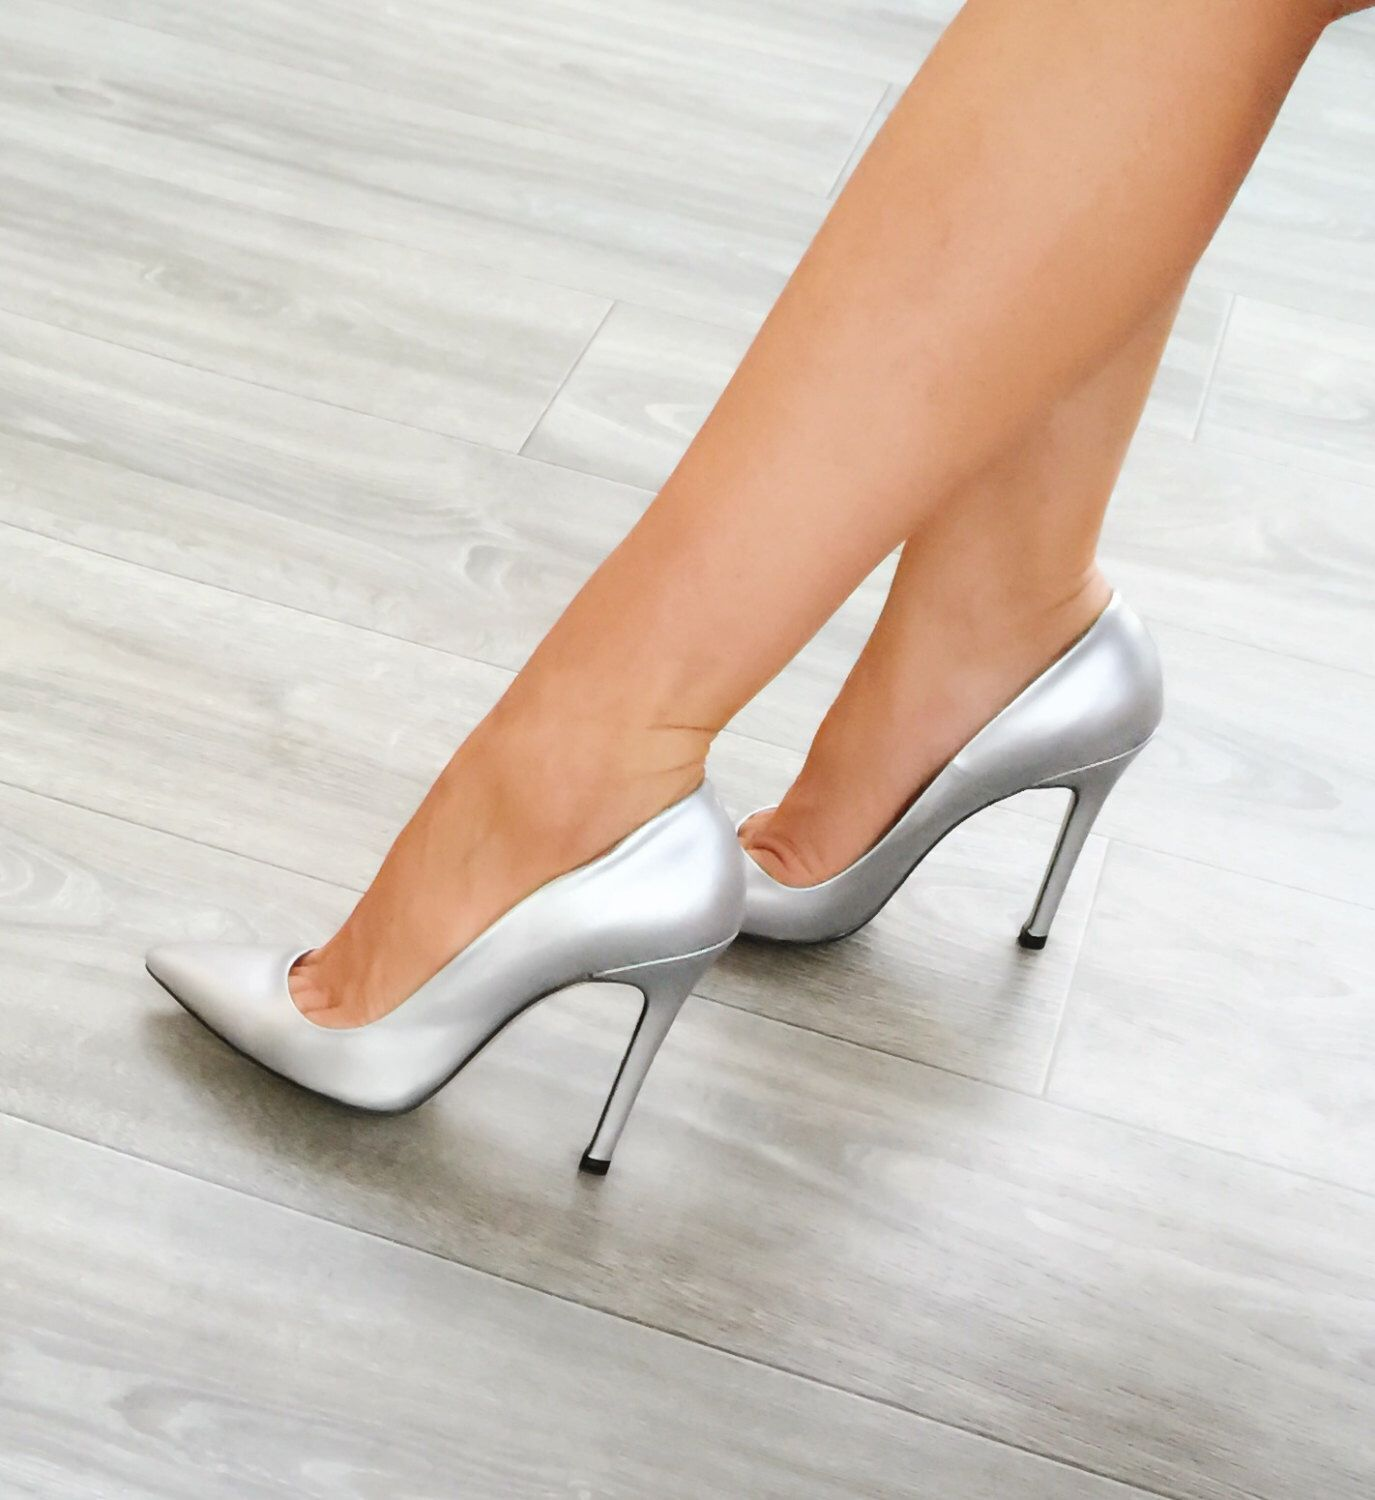 pearl pearlescent silver stilettos pumps silver pumps high heels high heeled shoes. Black Bedroom Furniture Sets. Home Design Ideas